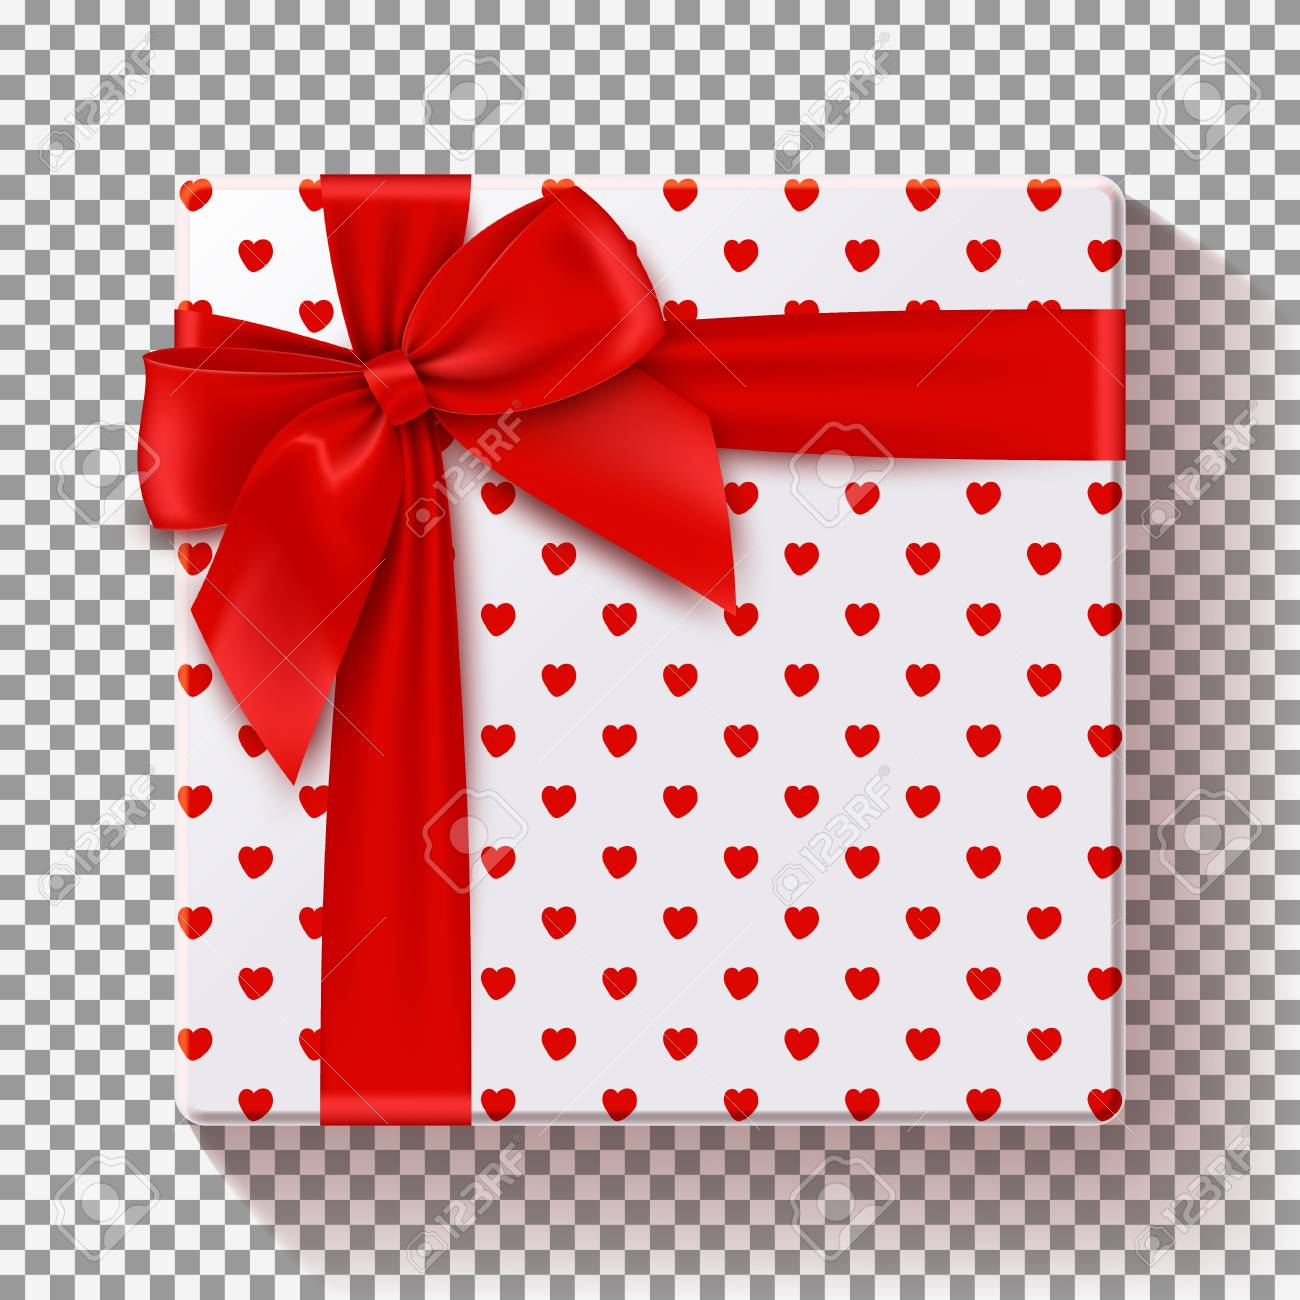 Top View On Gift With Red Bow Template For Greeting Card Christmas New Year Birthday And Valentines Day